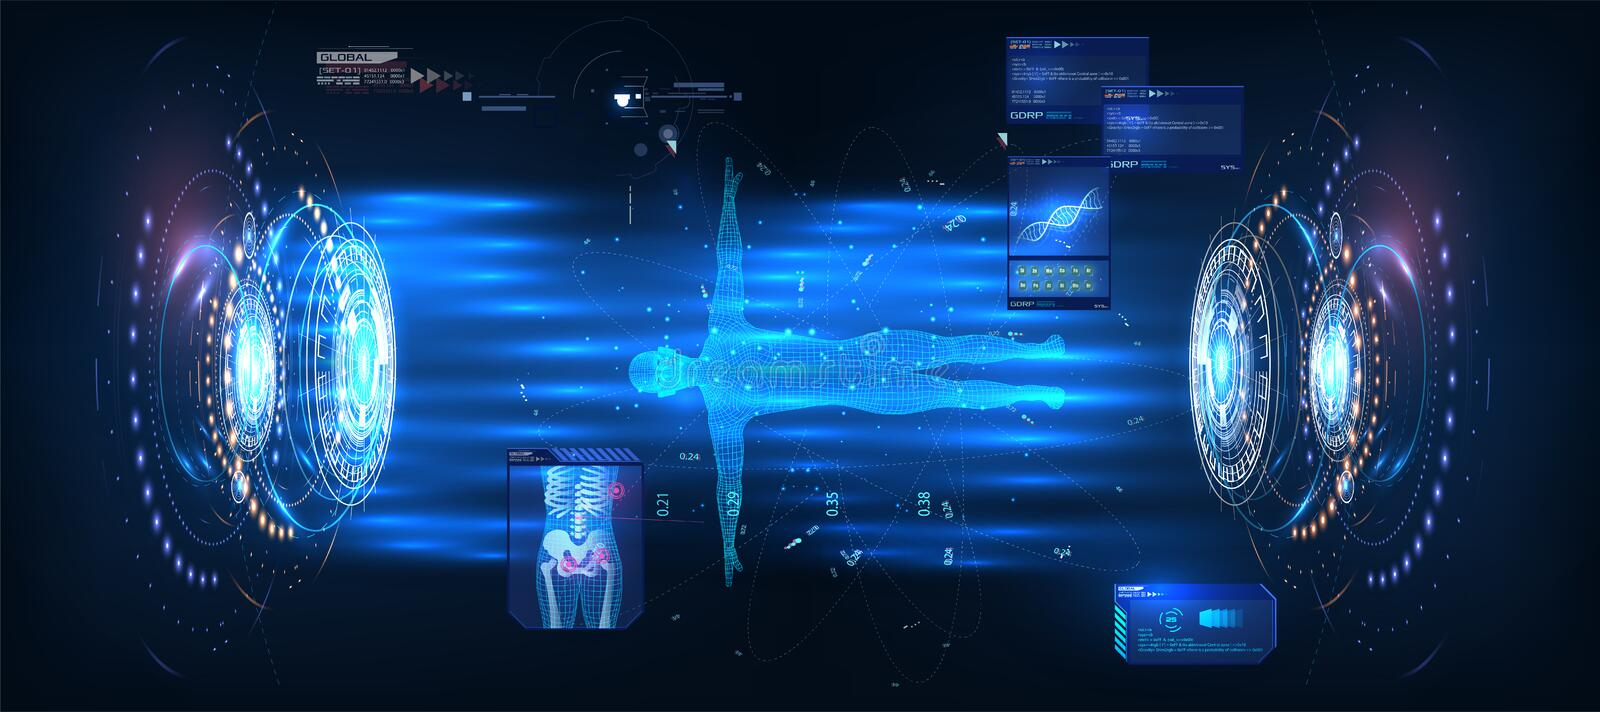 HUD UI GUI , great design for any purposes. Blue technology background vector illustration. Futuristic technology hud screen. stock illustration